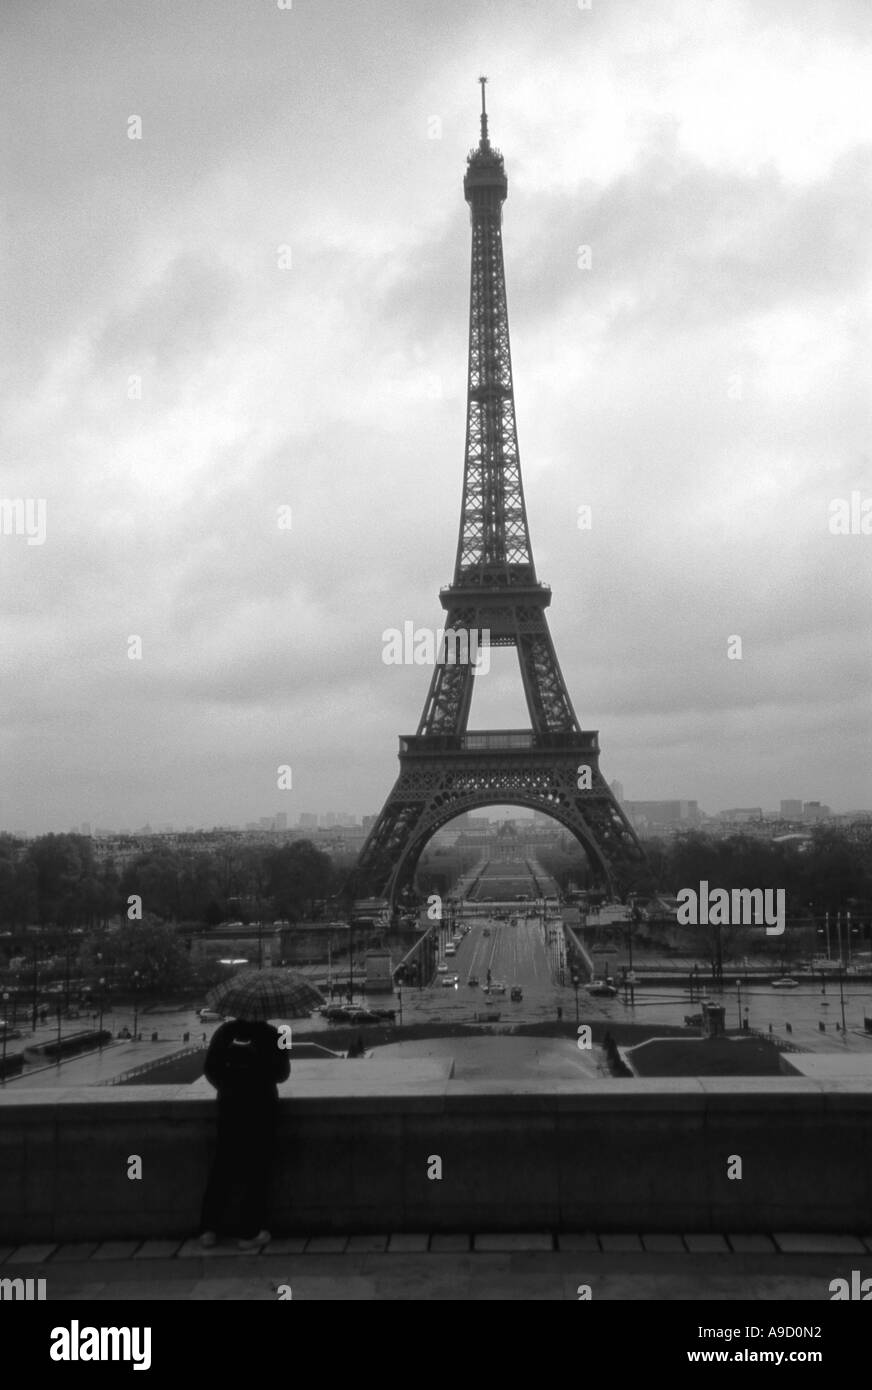 View of magnificent Tour Eiffel Tower one the highest iron buildings in the World Paris northern France Europe Stock Photo